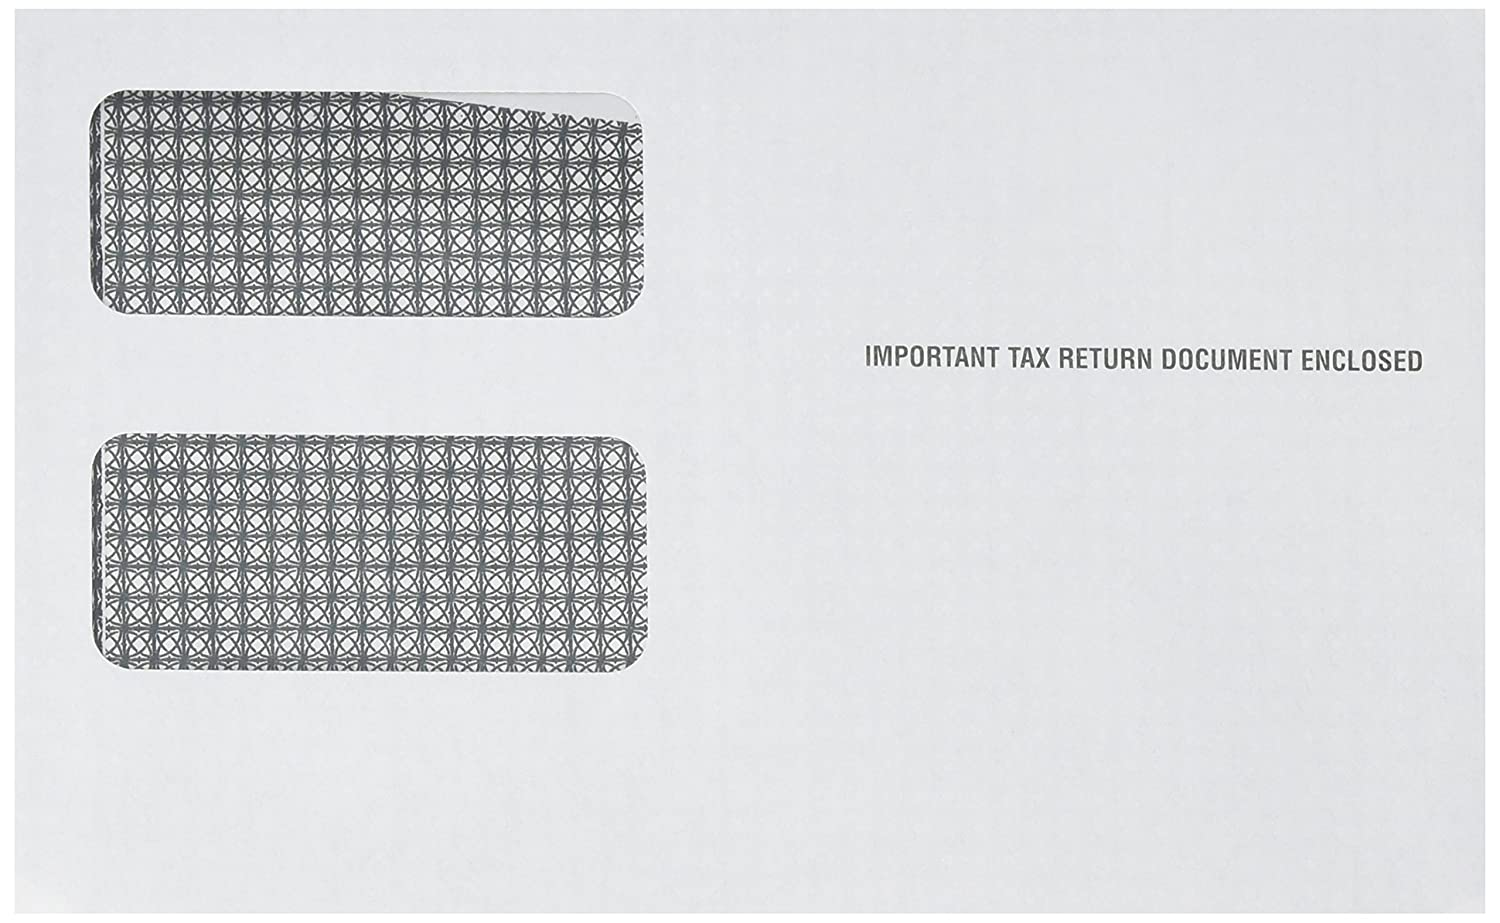 Amazon tops 1099 r form double window envelopes white amazon tops 1099 r form double window envelopes white carton of 500 b2222 business envelopes office products falaconquin